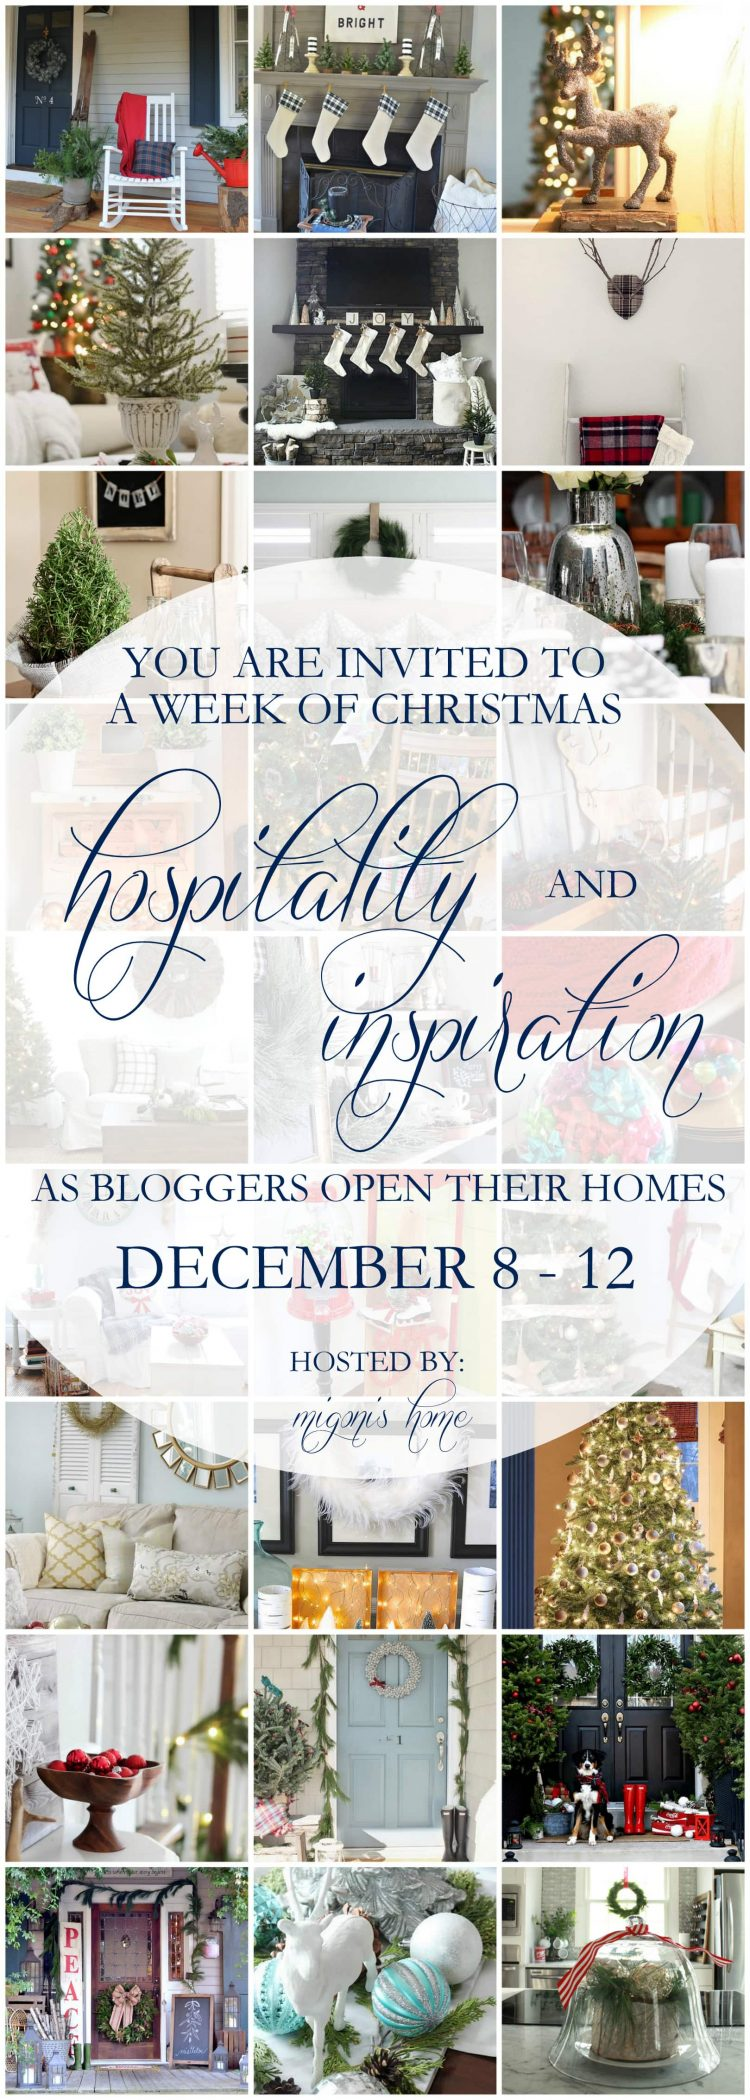 Incredible collection of stunning Christmas home tours and holiday decorating inspiration! via maisondepax.com